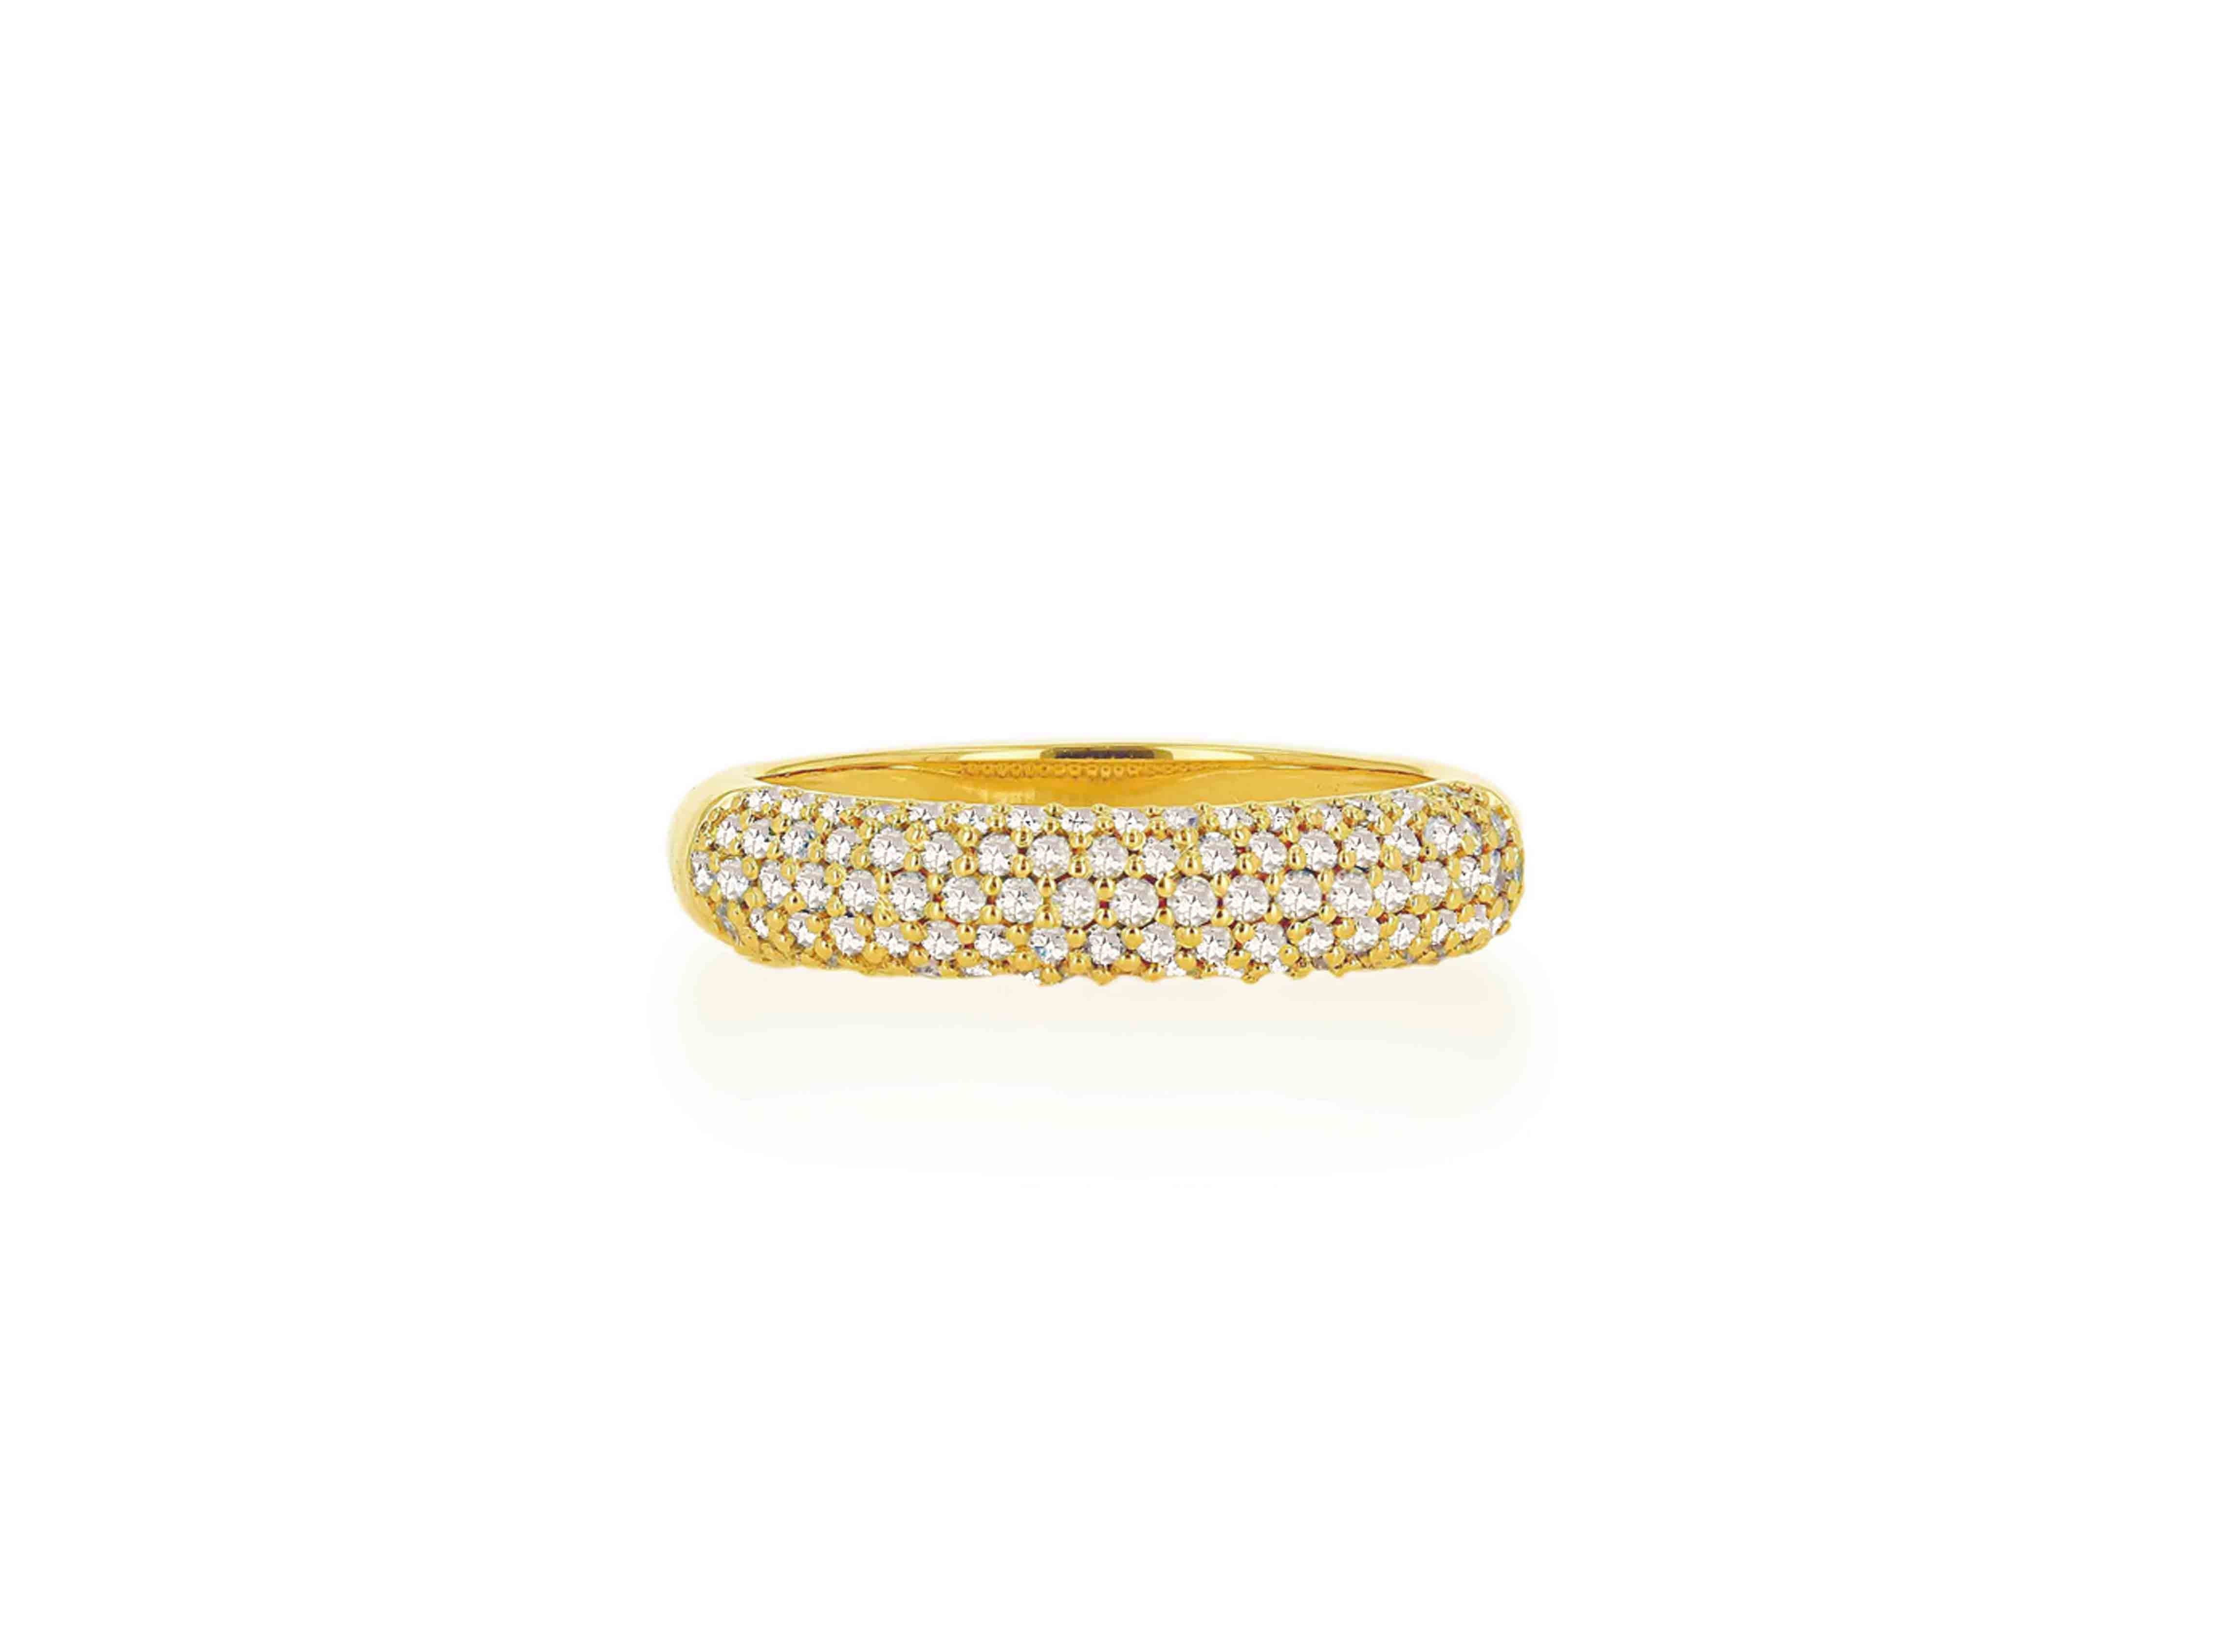 Pave Diamond Domed Band Ring